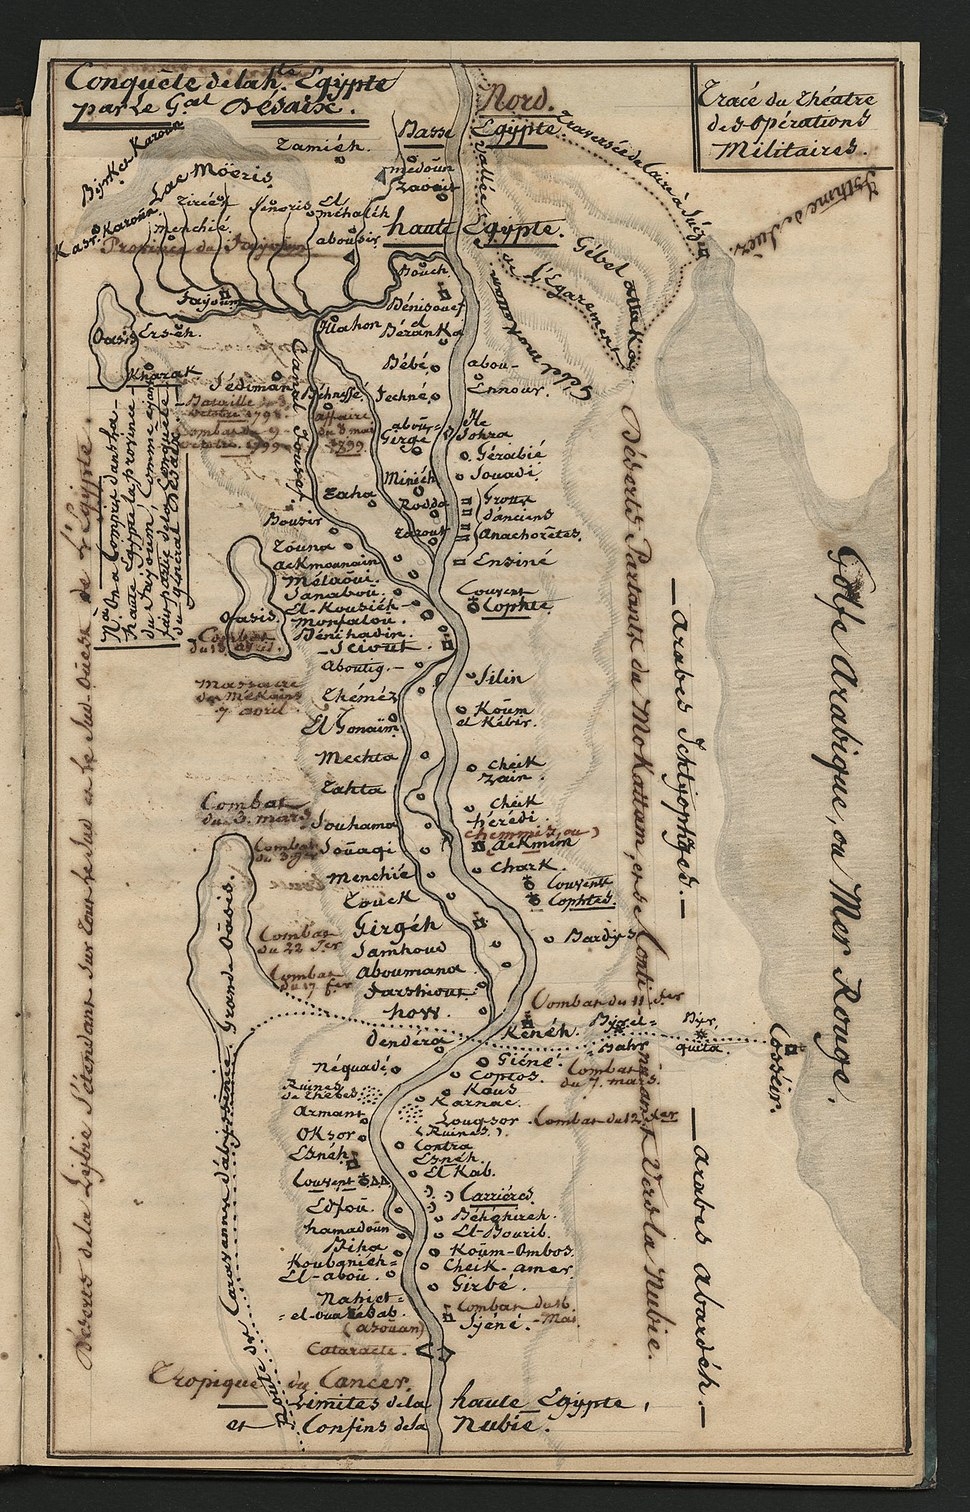 """""""Tracé du théatre operations Militaires"""" from E.L.F. Hauet's manuscripts of the Campaign in Egypt"""